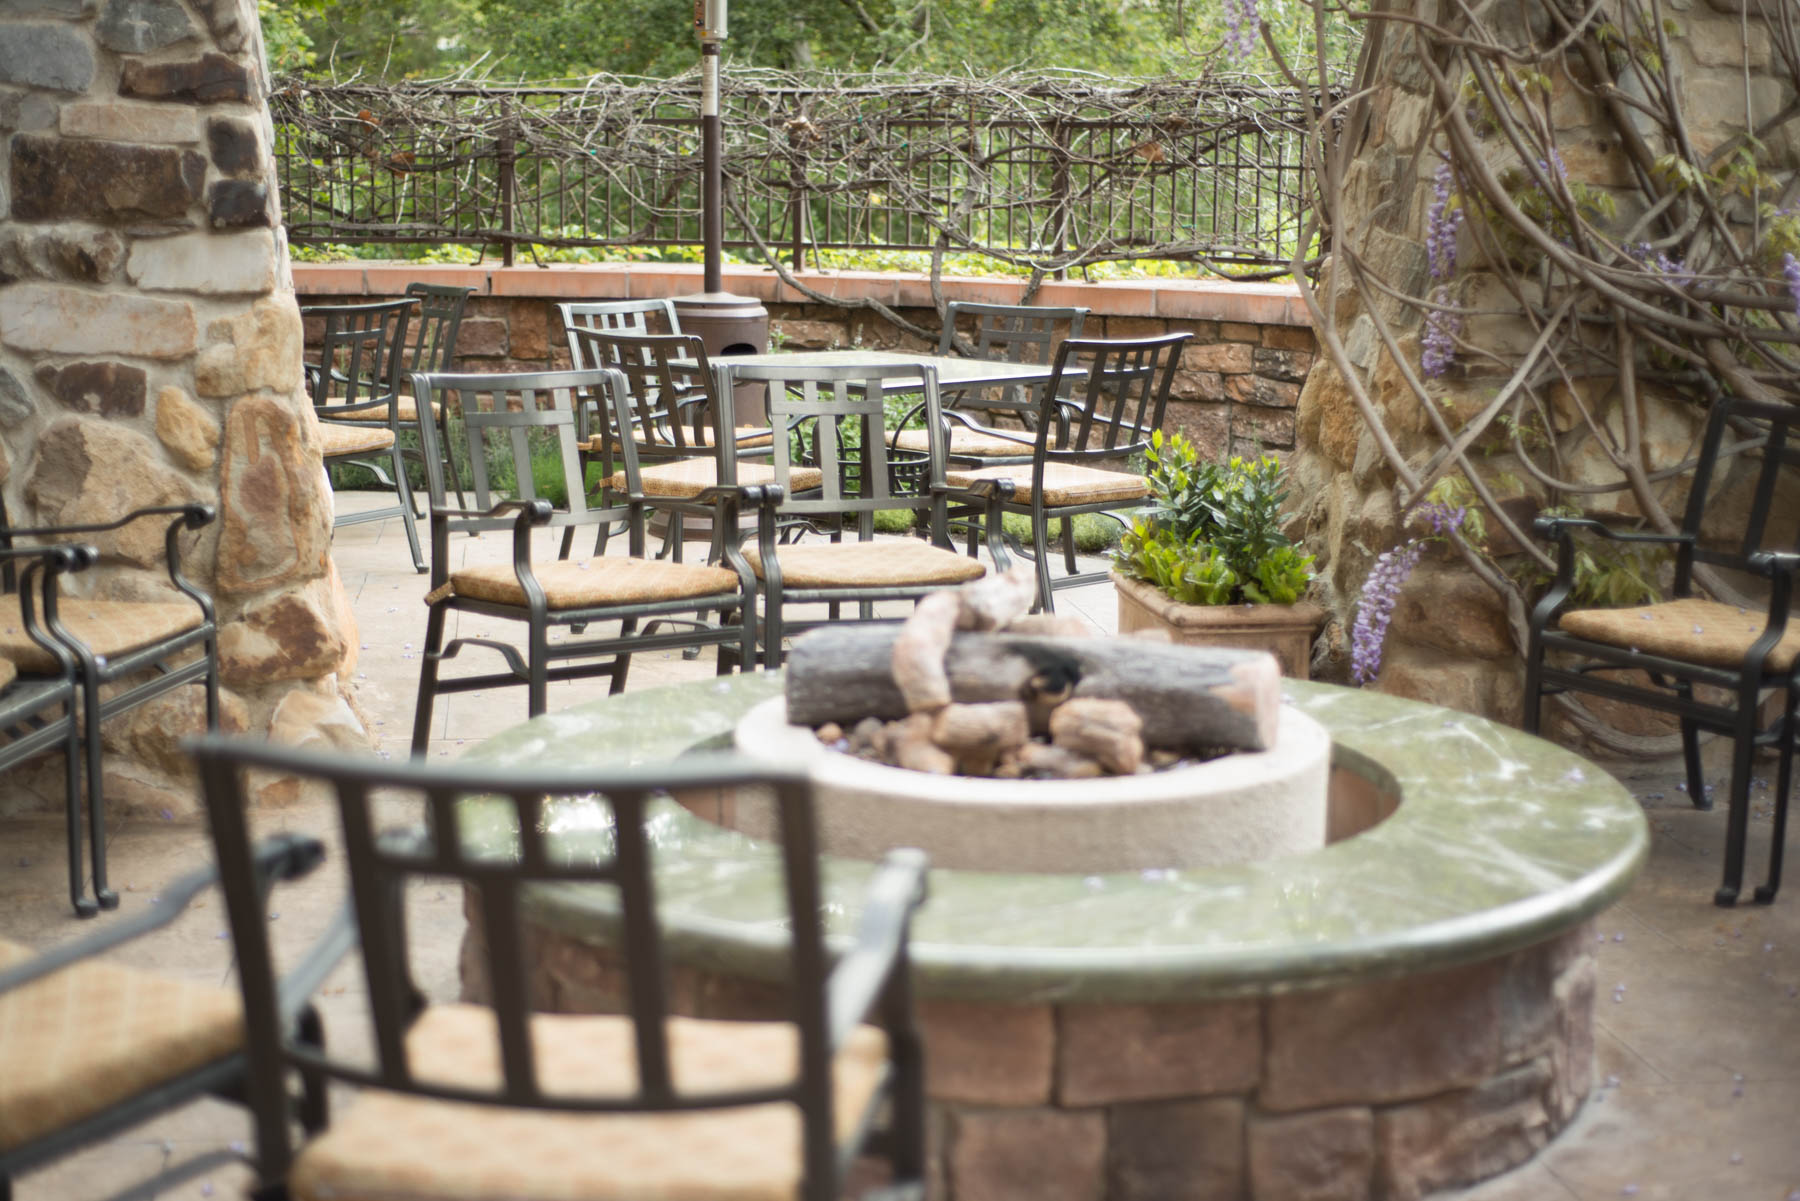 Napa Rose Restaurant Outside Patio and Fire Pits - Disneyland Hotel Activities for Adults